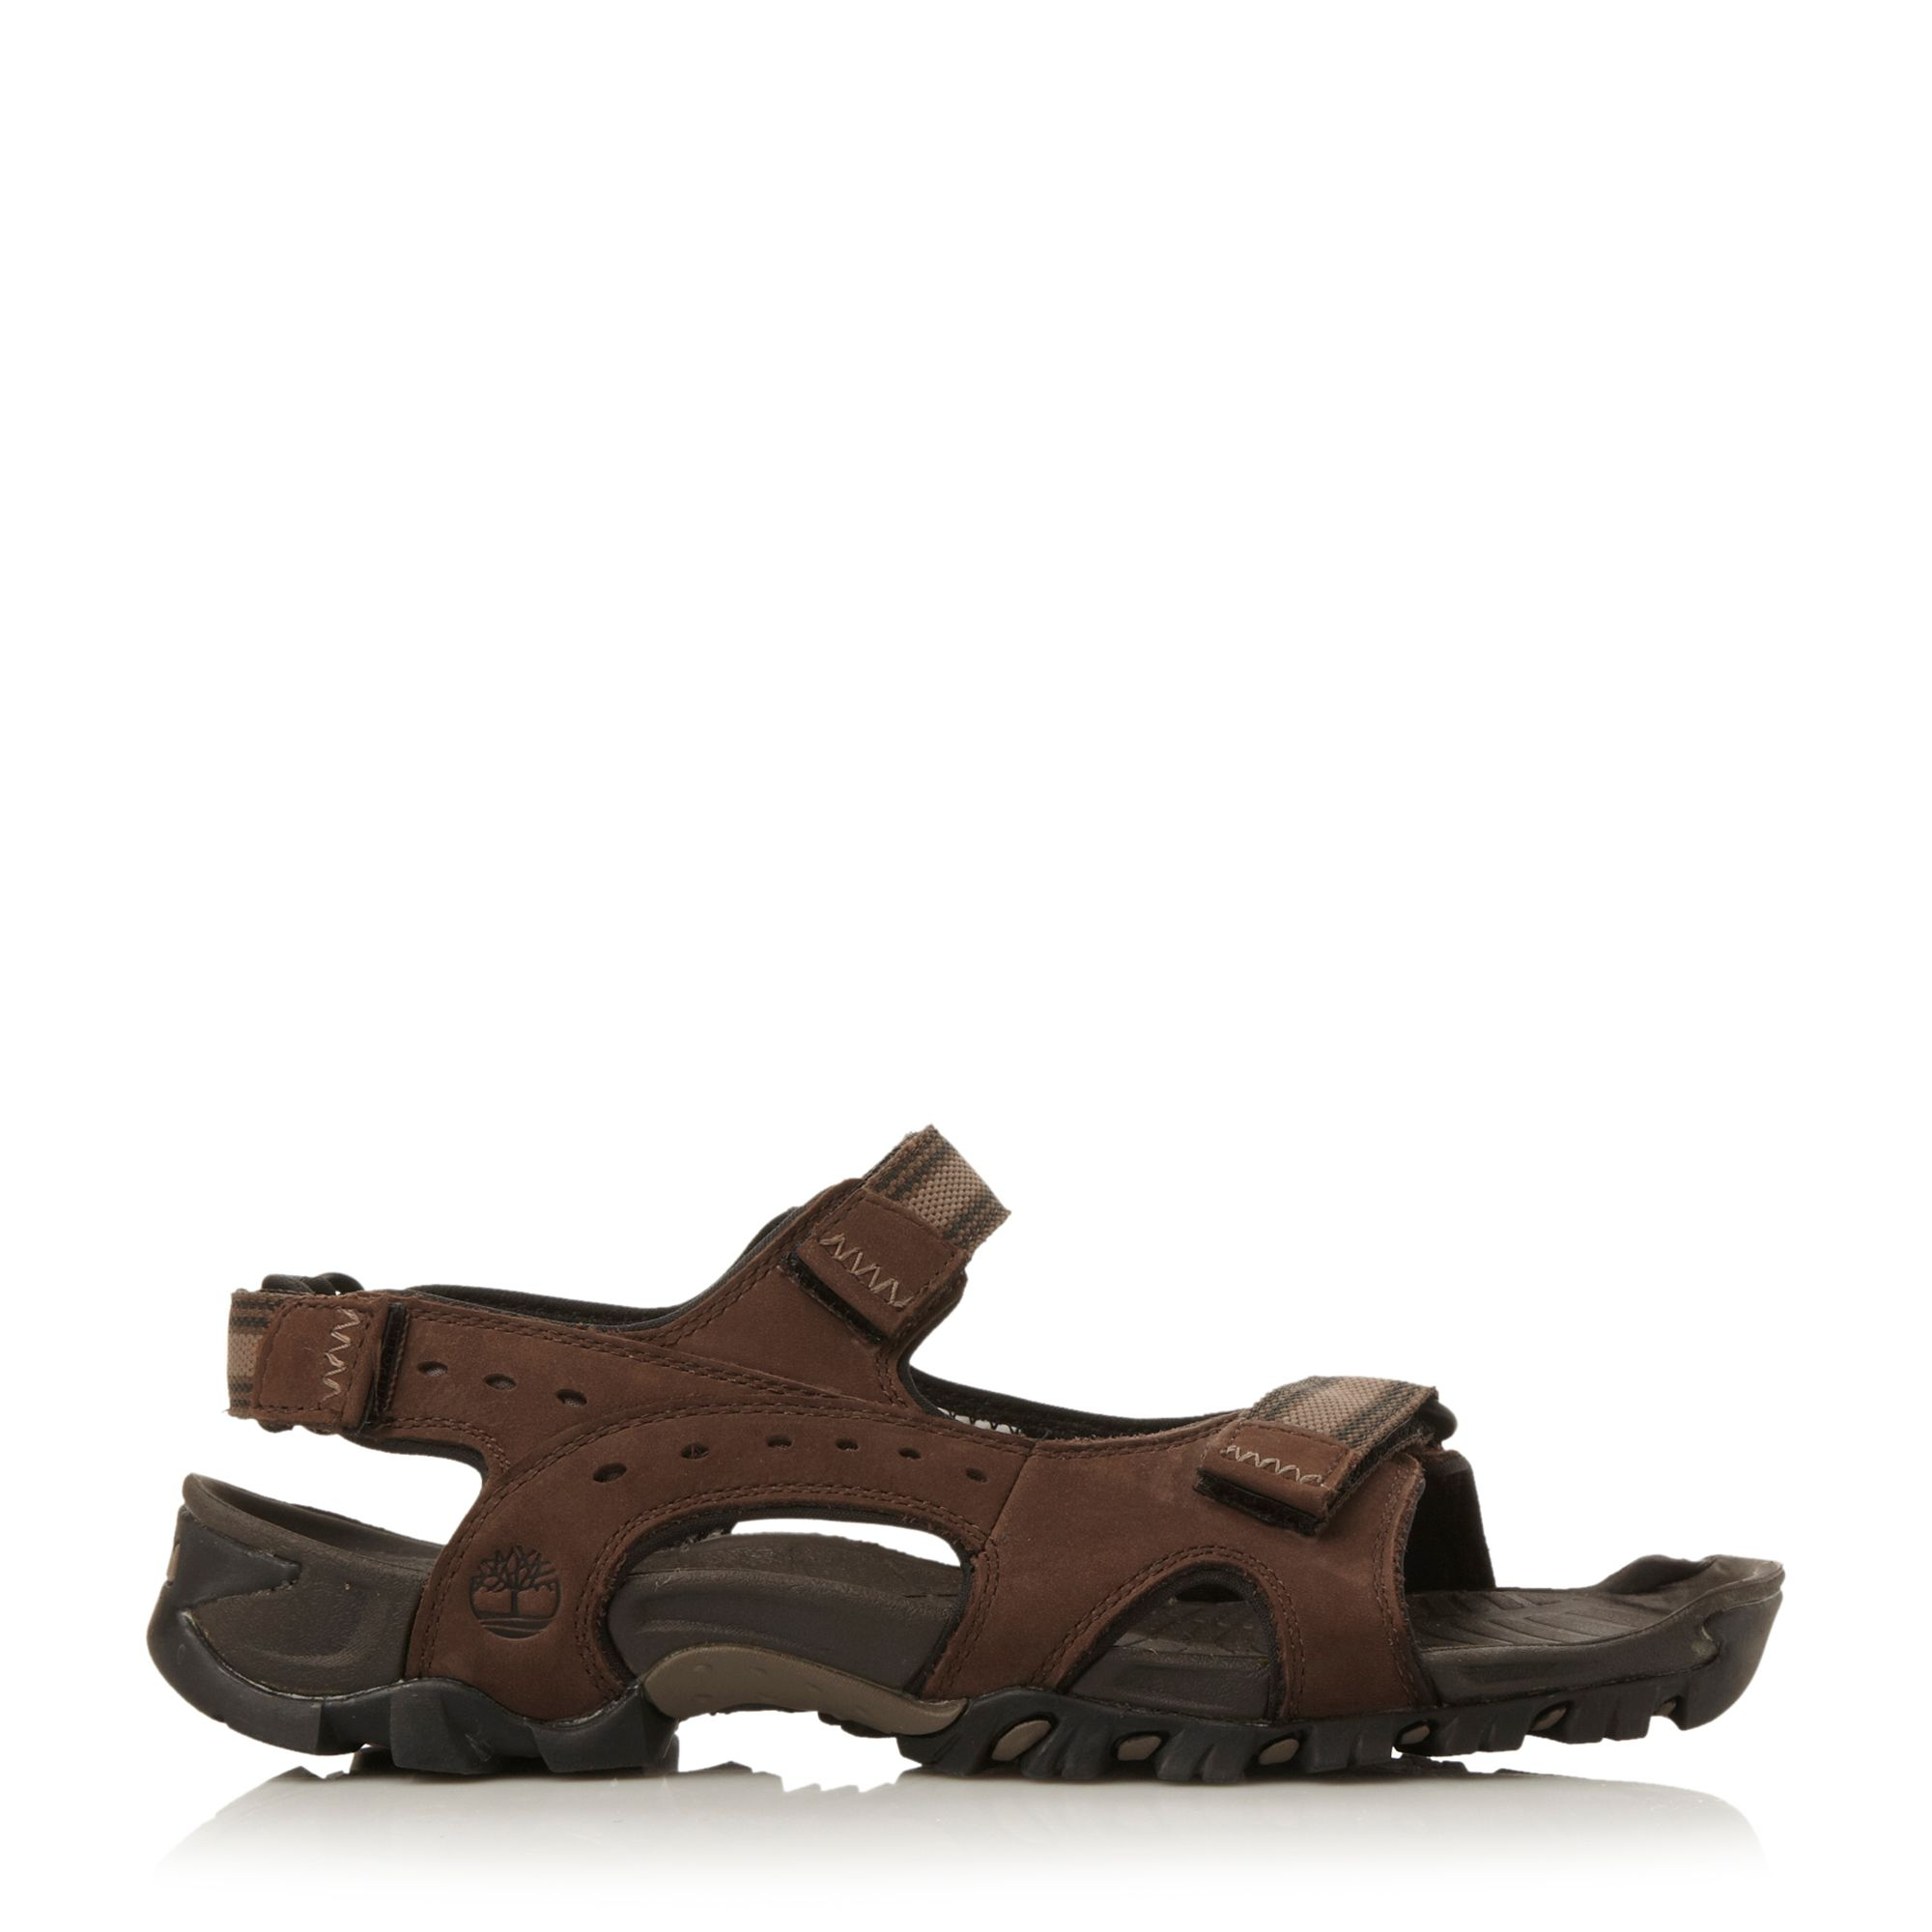 timberland velcro strap casual sandals in brown for men lyst. Black Bedroom Furniture Sets. Home Design Ideas